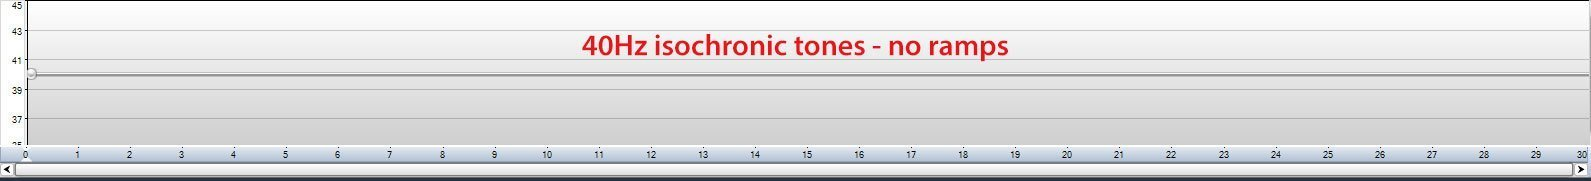 40Hz isochronic tones - session snapshot